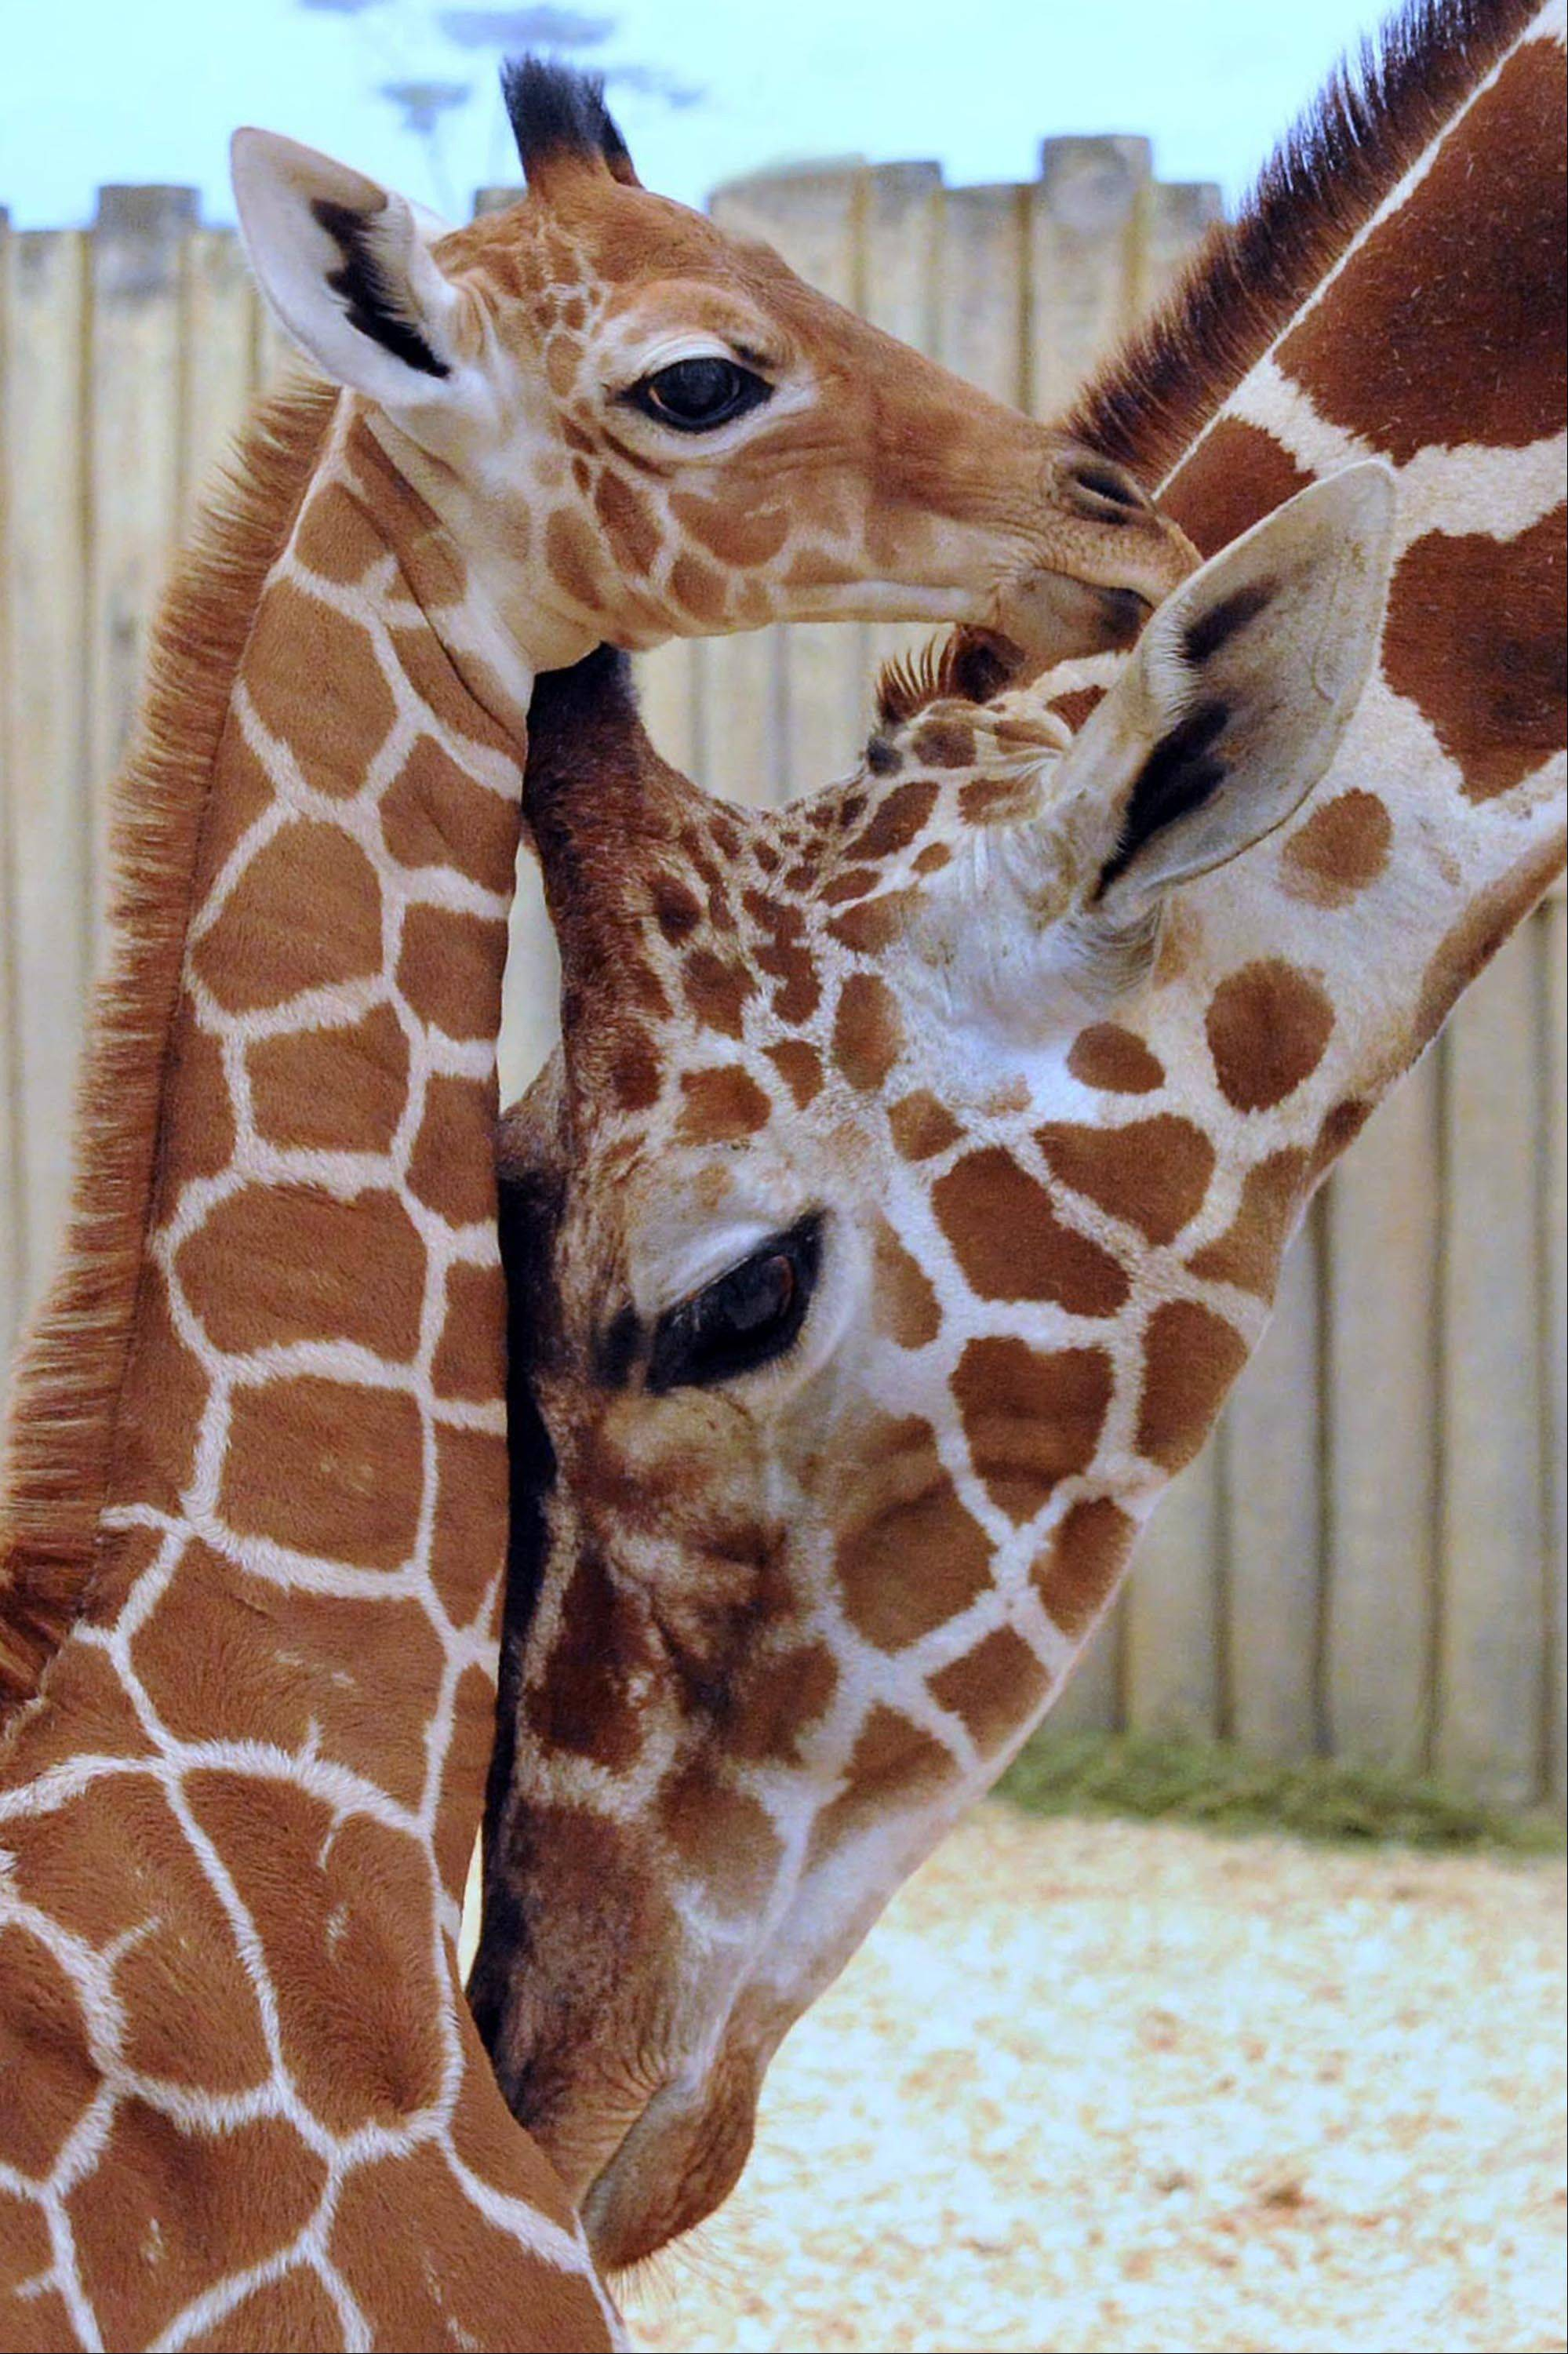 A male giraffe calf born at Brookfield Zoo on Nov. 12, 2012 with his mom, Arnieta. This calf is the 58th giraffe born at Brookfield Zoo. His birth marks three generations of giraffes at Brookfield Zoo, and he can can be seen indoors in the zoo�s Habitat Africa! The Savannah exhibit.